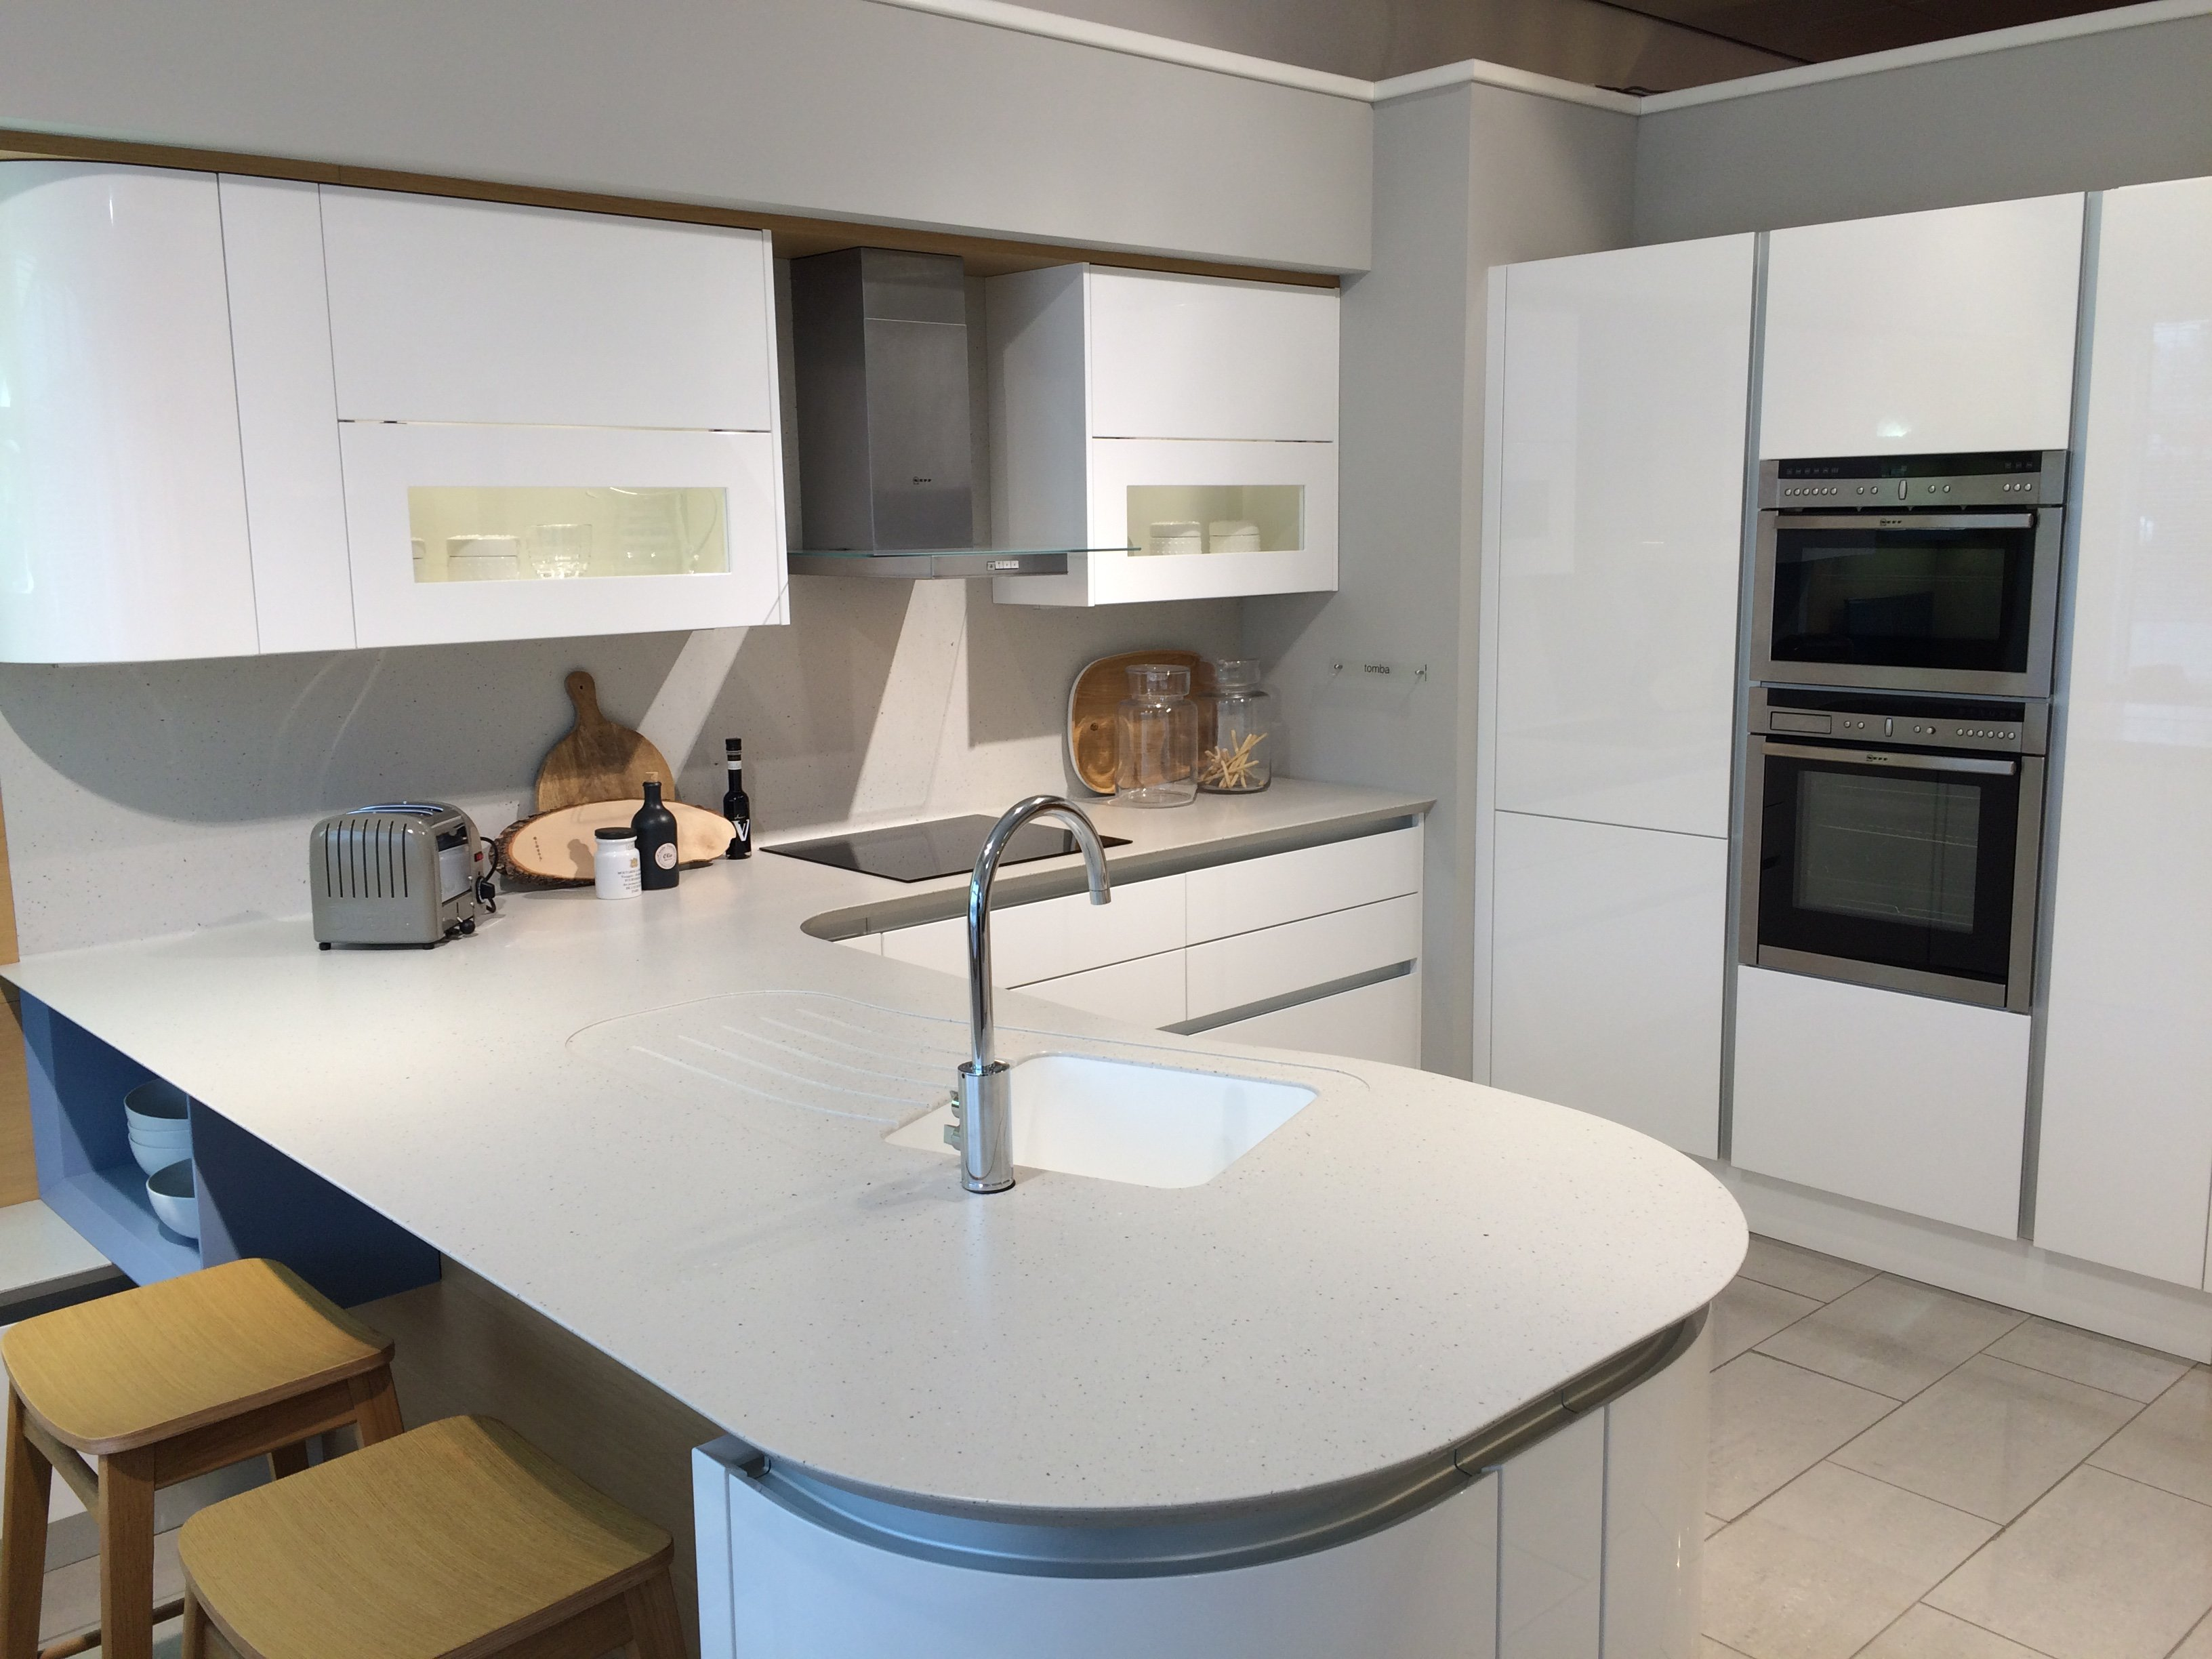 Kitchen Designer - Kitchen Design hertfordshire